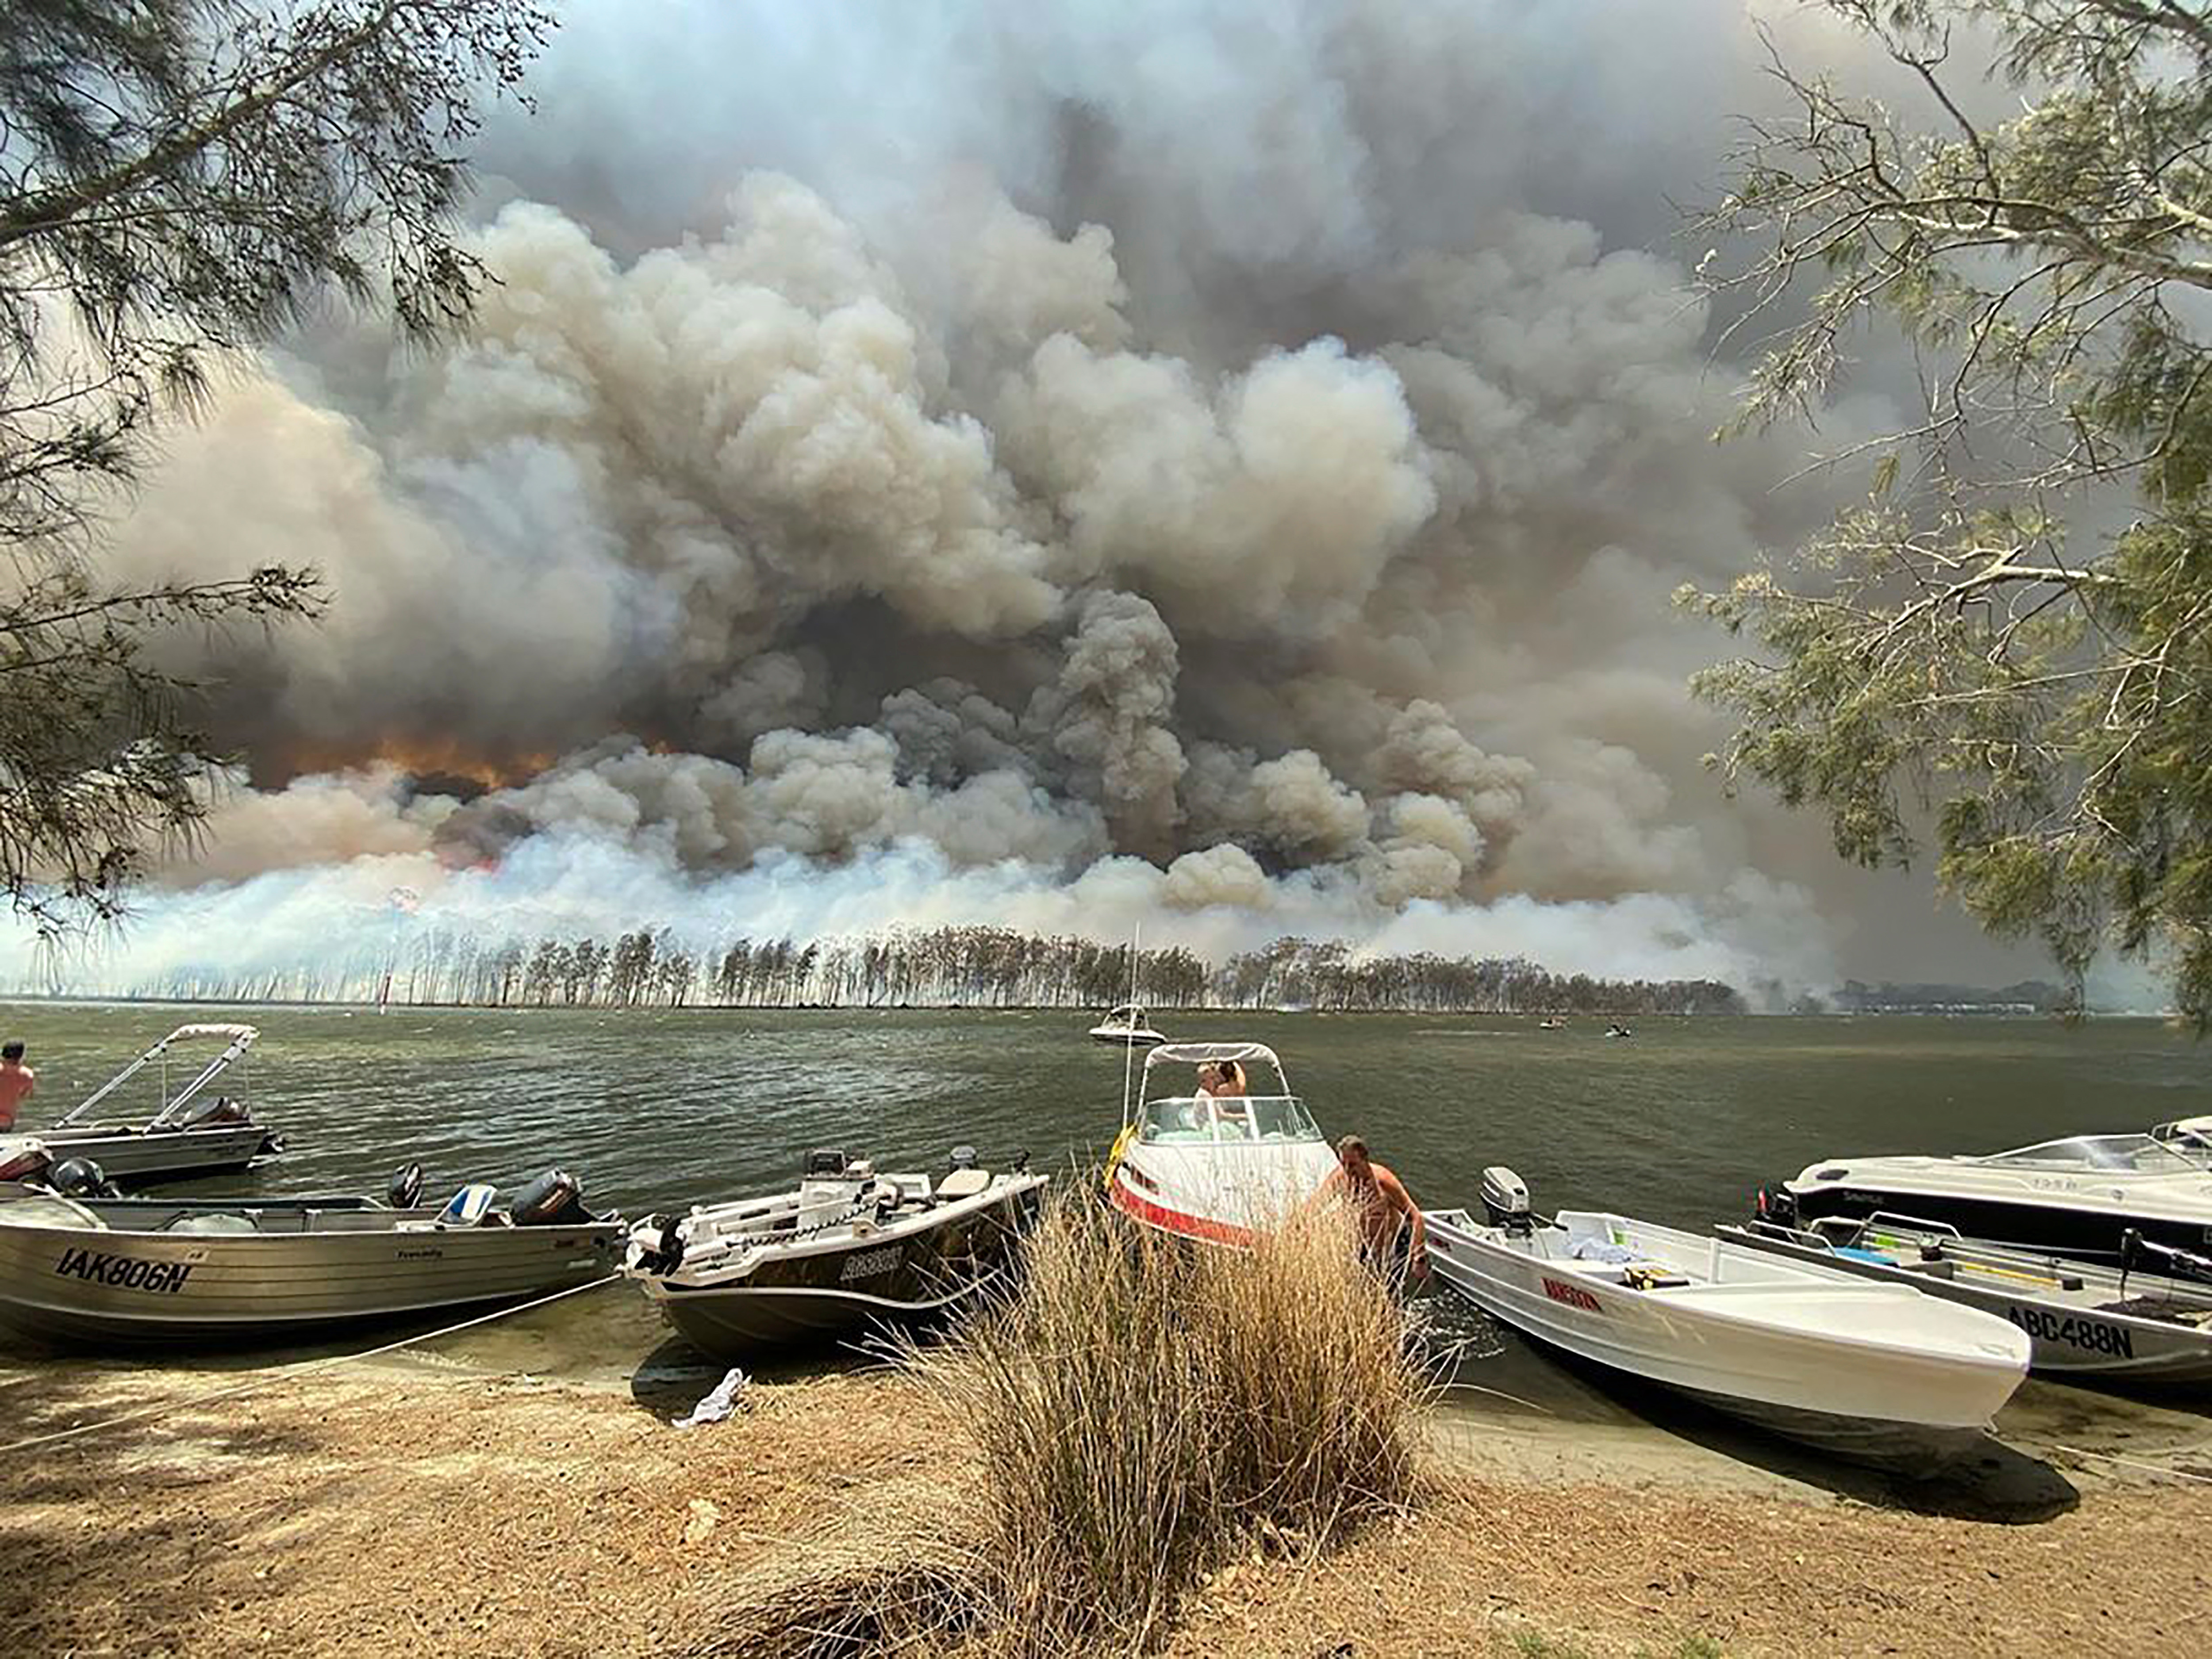 Boats are pulled ashore as smoke and wildfires rage behind Lake Conjola on the South Coast of New South Wales